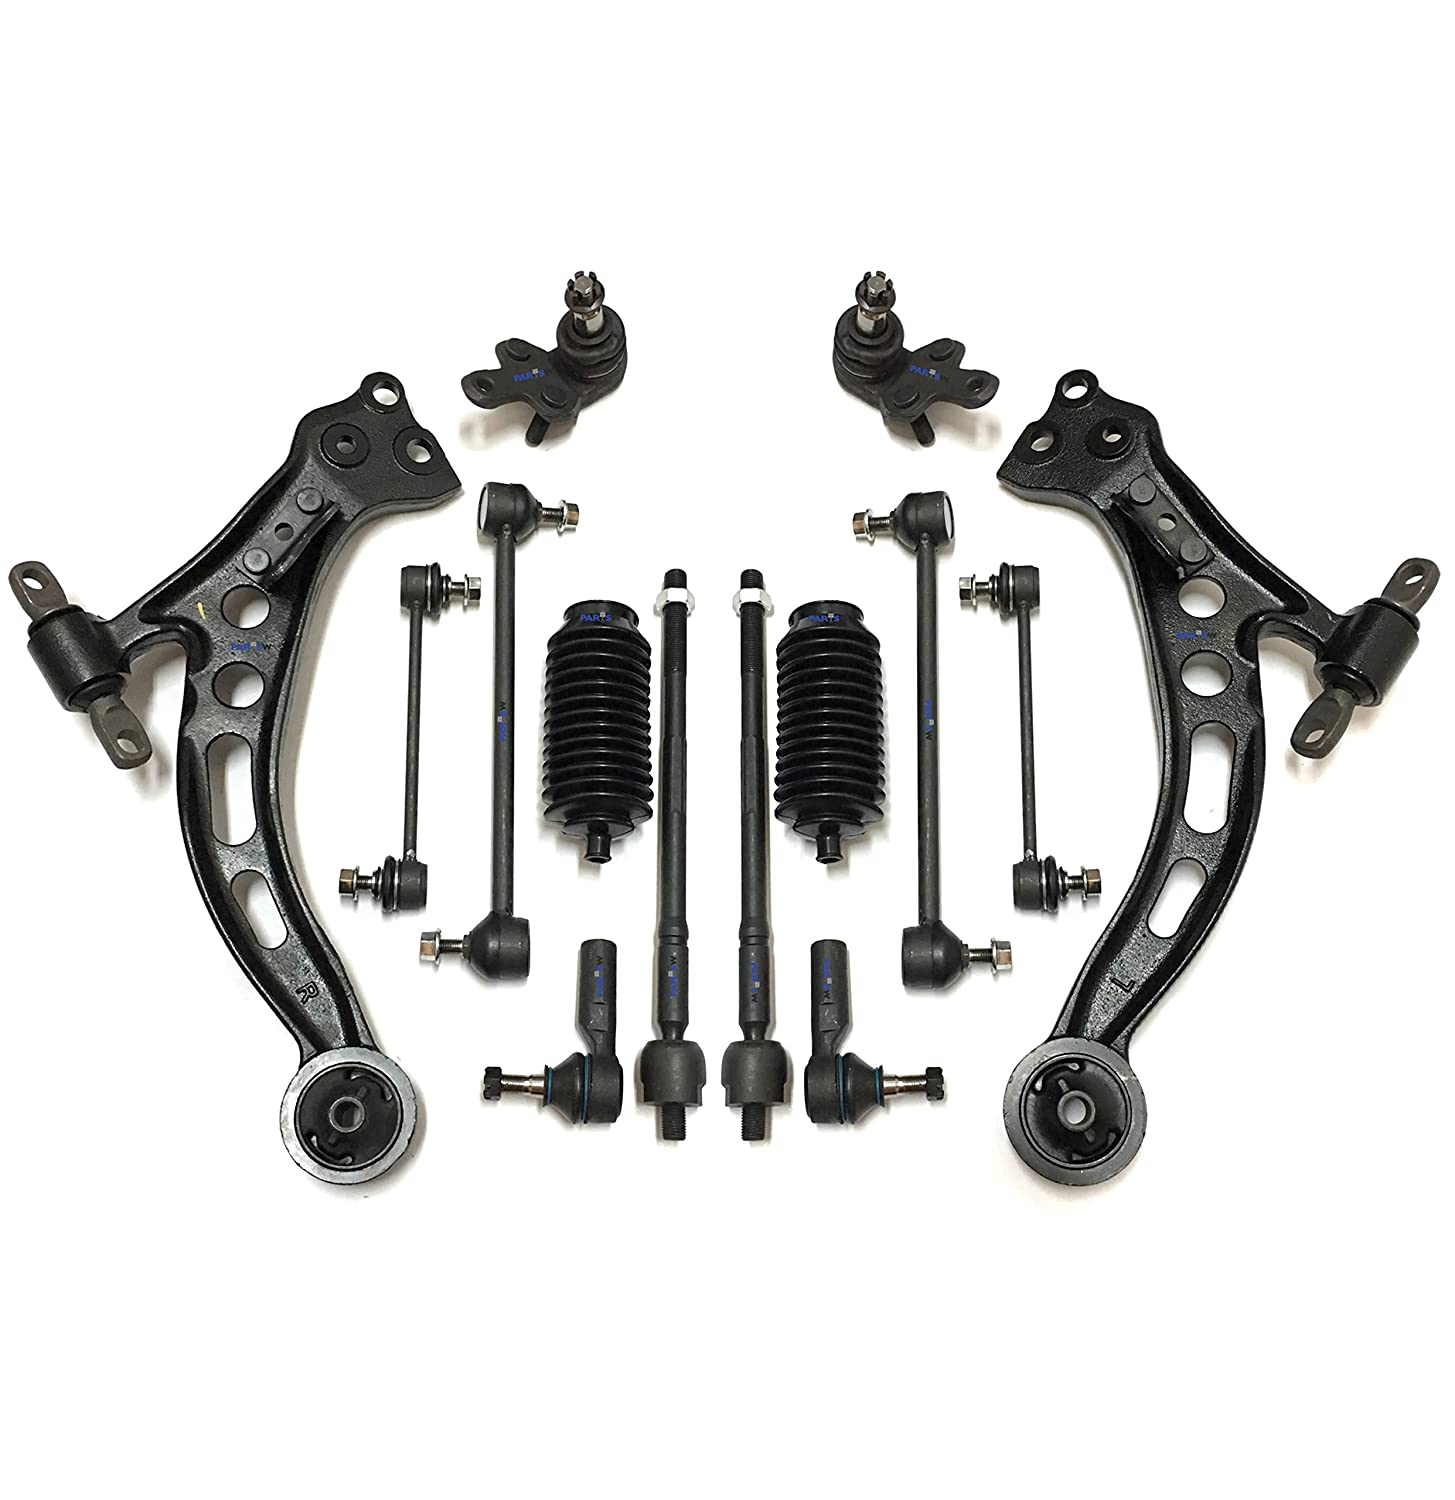 PartsW 14 Pc Complete Suspension Kit for Lexus ES300 & Toyota Avalon Camry,  Front Lower Control Arms Ball Joints Inner Outer Tie Rod Sway Bar Link